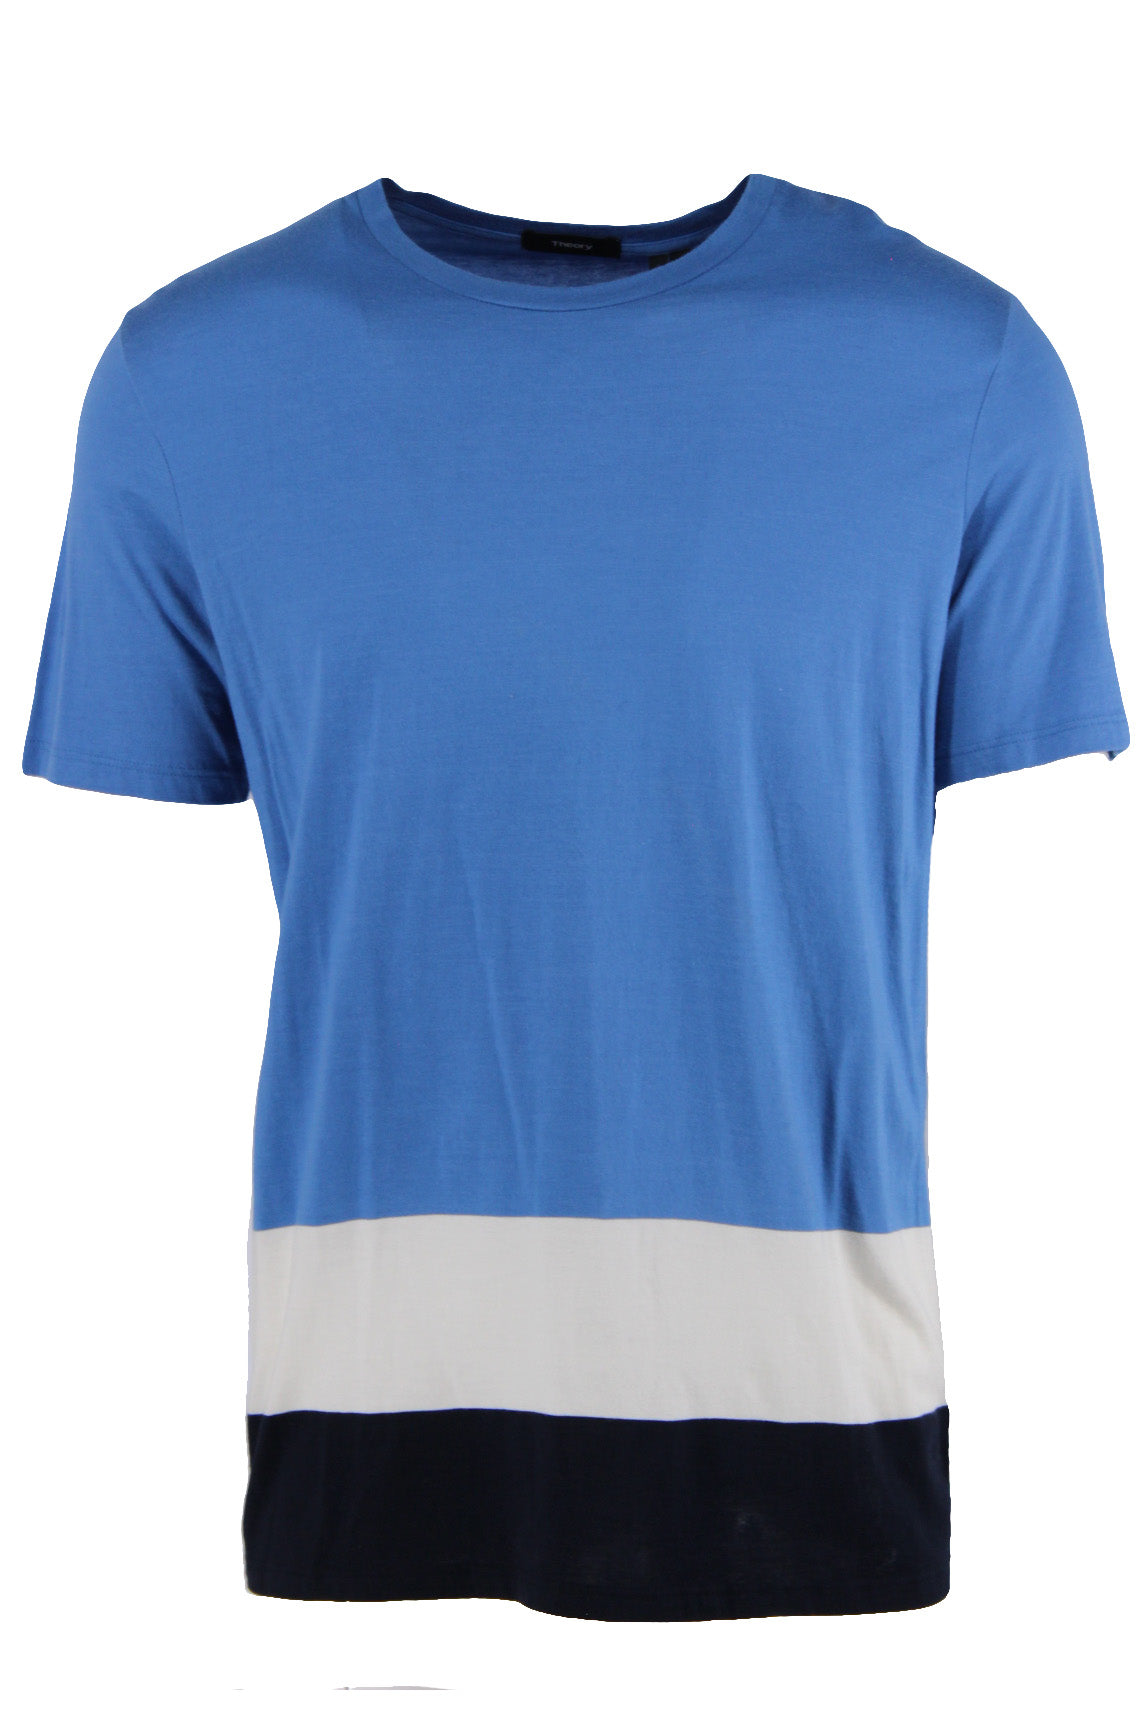 theory blue, ivory, and midnight 'tricolor jersey' short sleeve t-shirt. features tricolor horizontal stripe design and crew neckline in a regular cut.